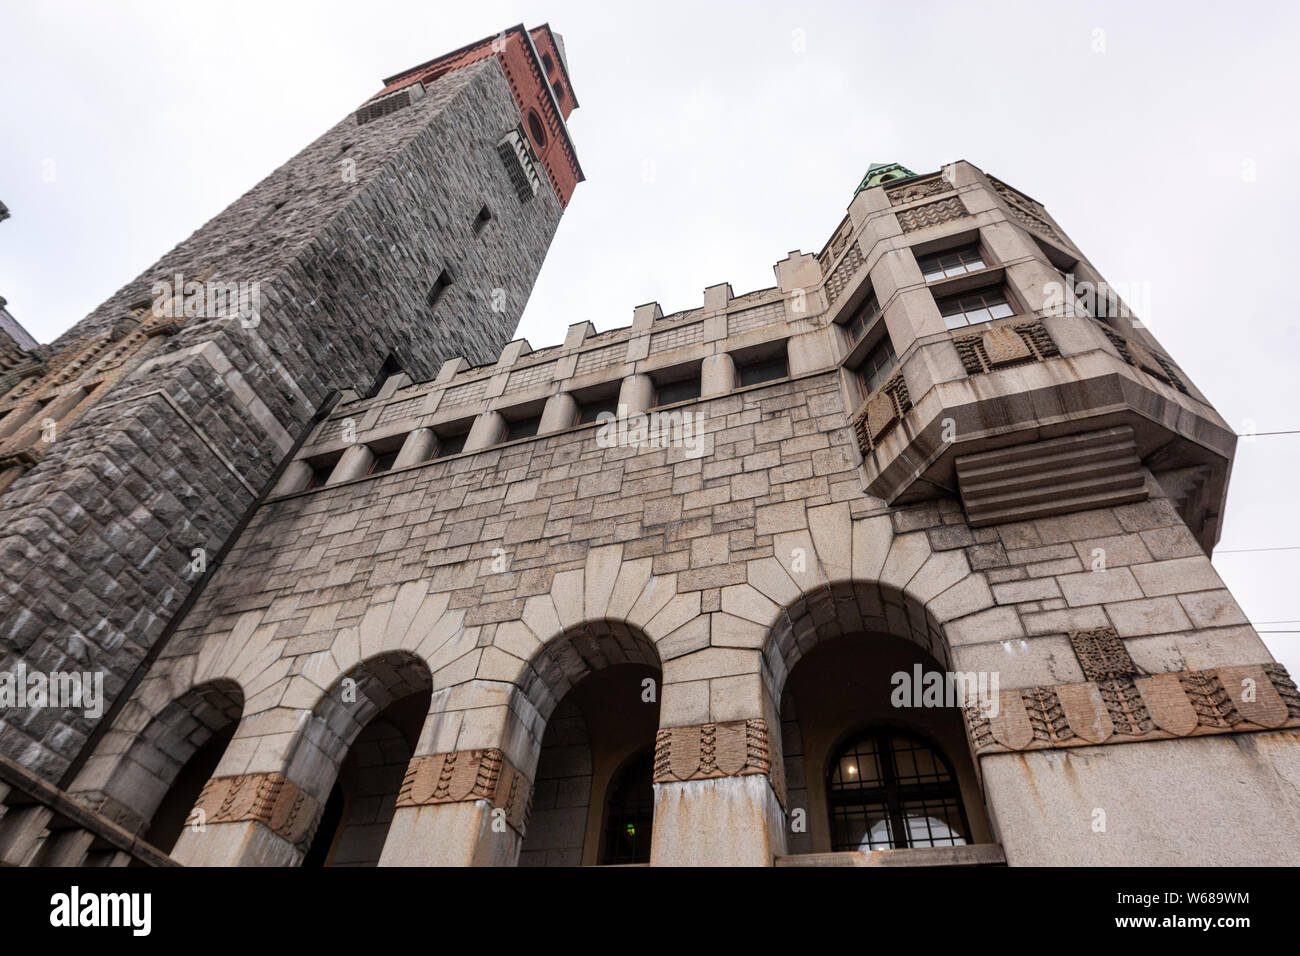 The National Museum of Finland, building reflects Finland's medieval churches and castles, Helsinki, Finland Stock Photo